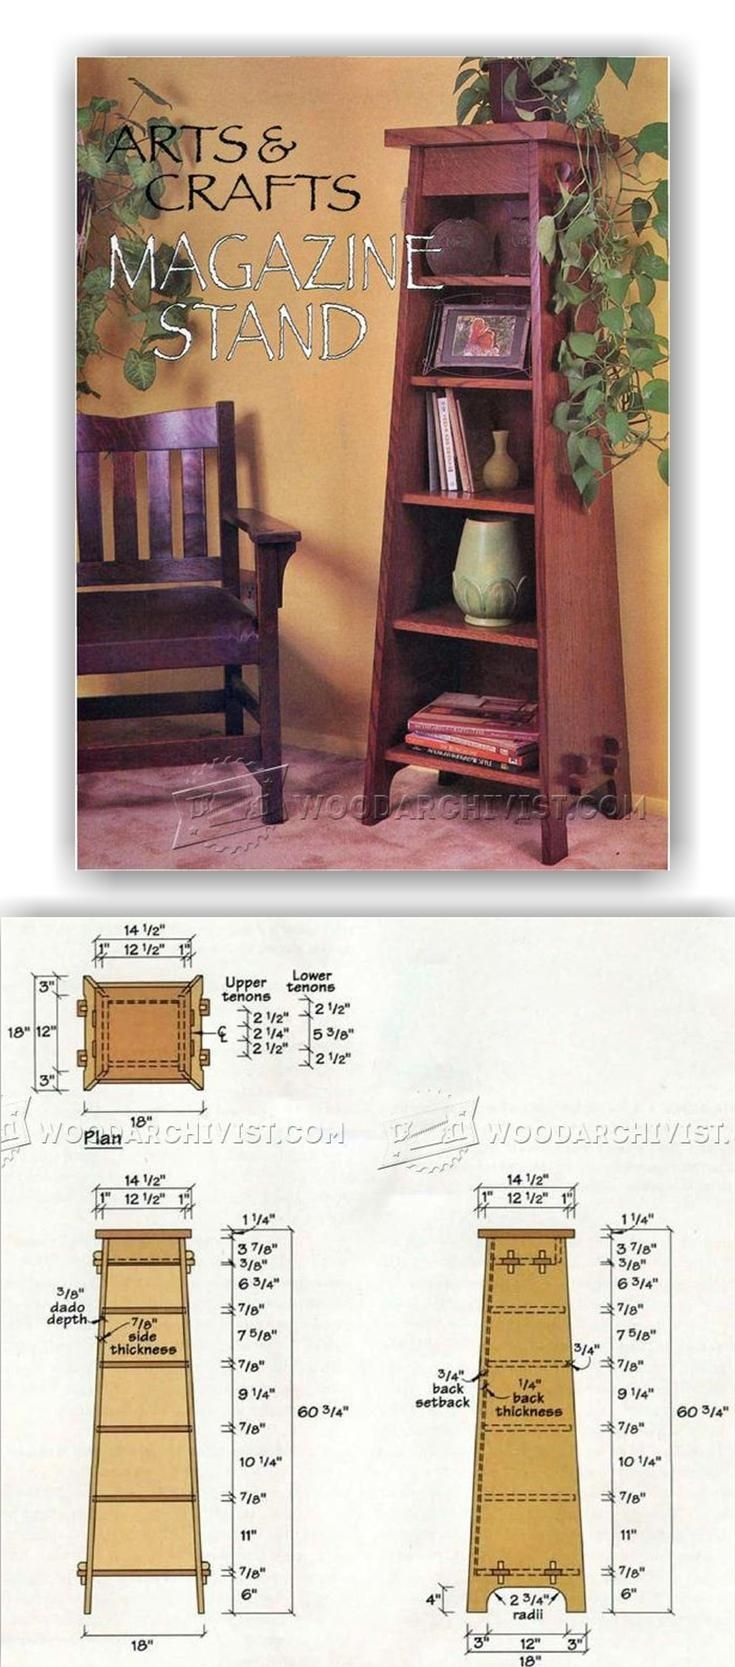 Arts and crafts furniture plans - Arts Crafts Stand Bookcase Plans Furniture Plans And Projects Woodarchivist Com